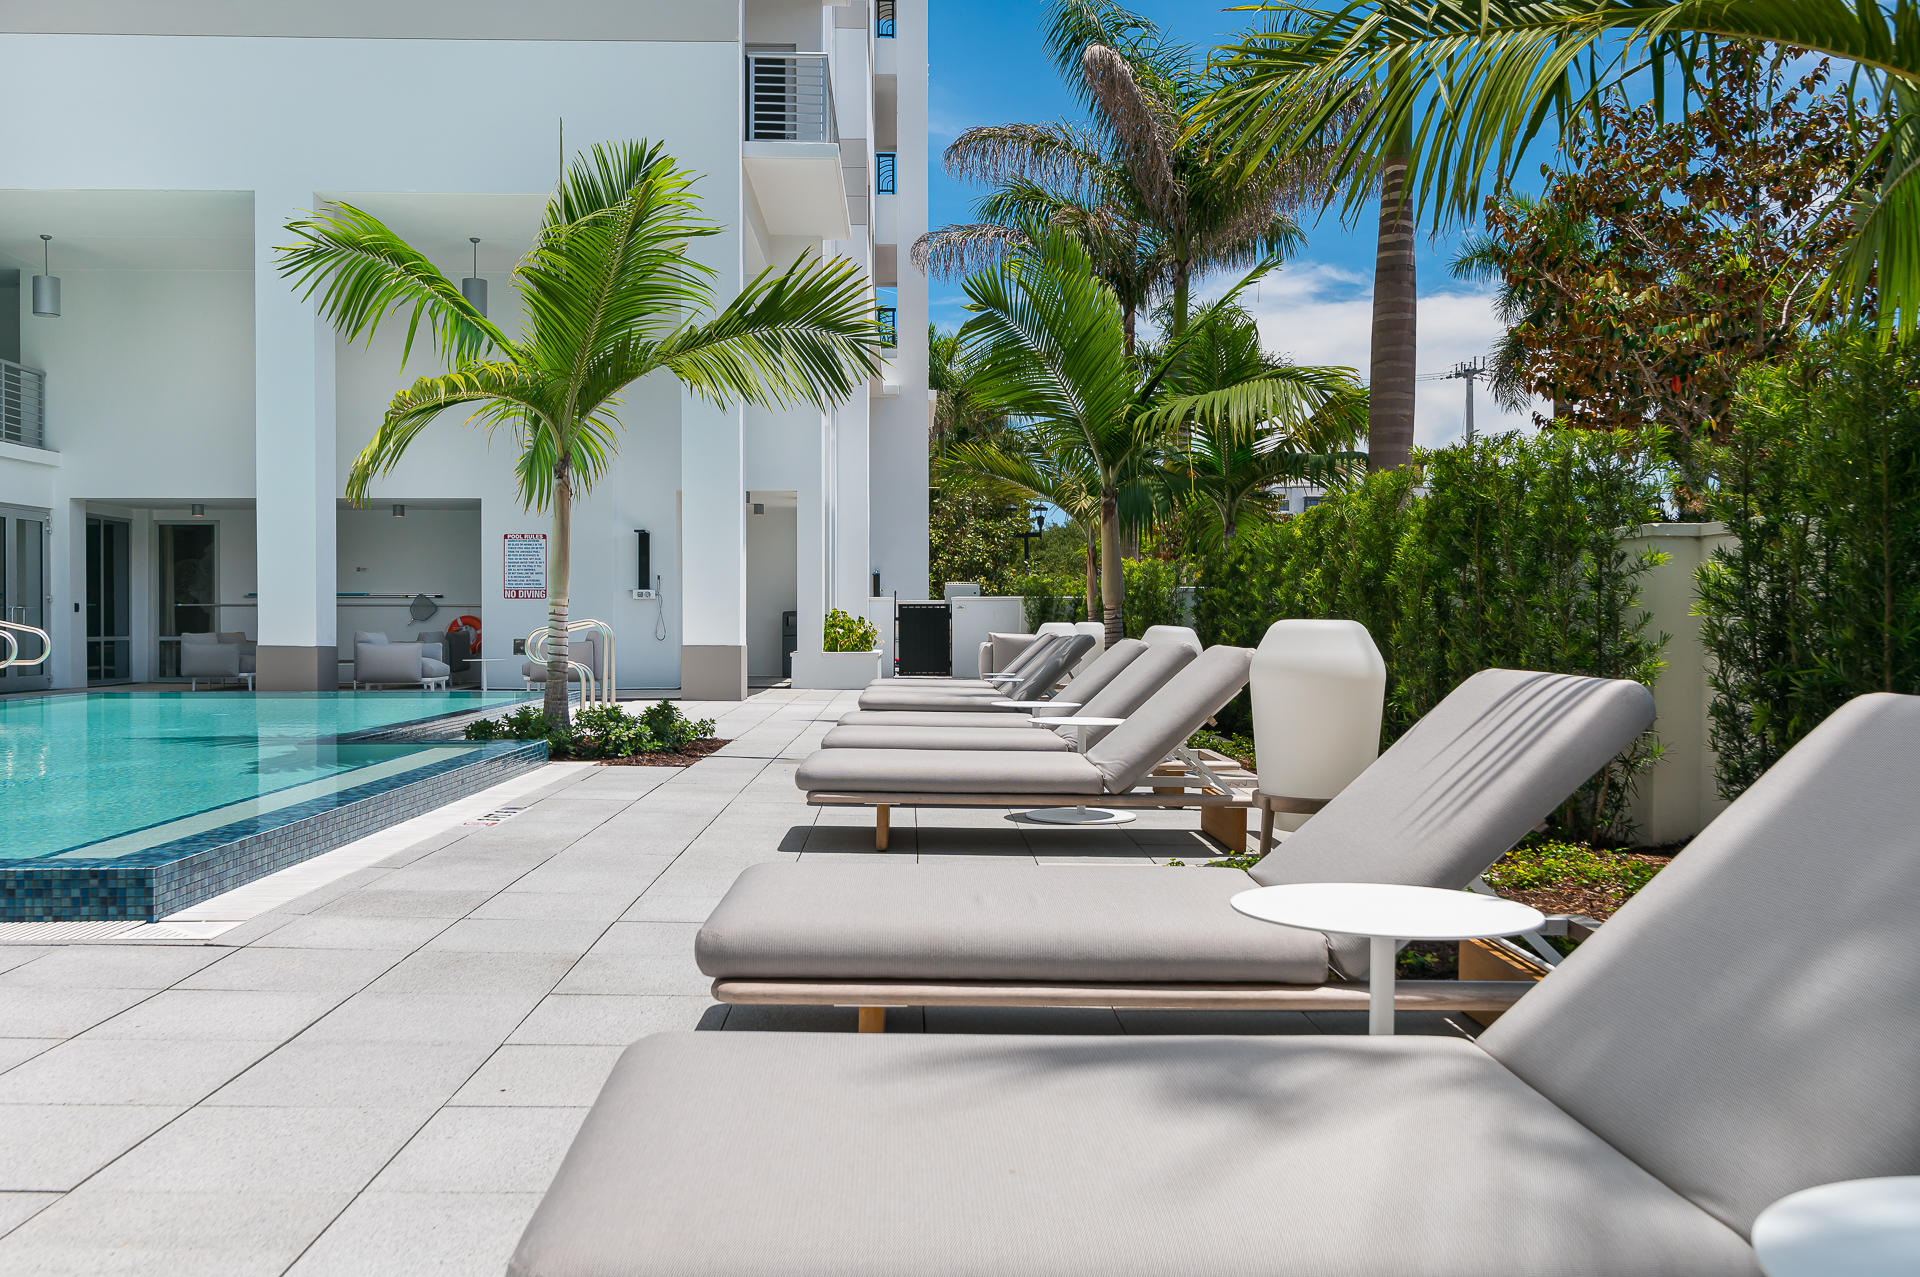 Pool & Outdoor Seating Area